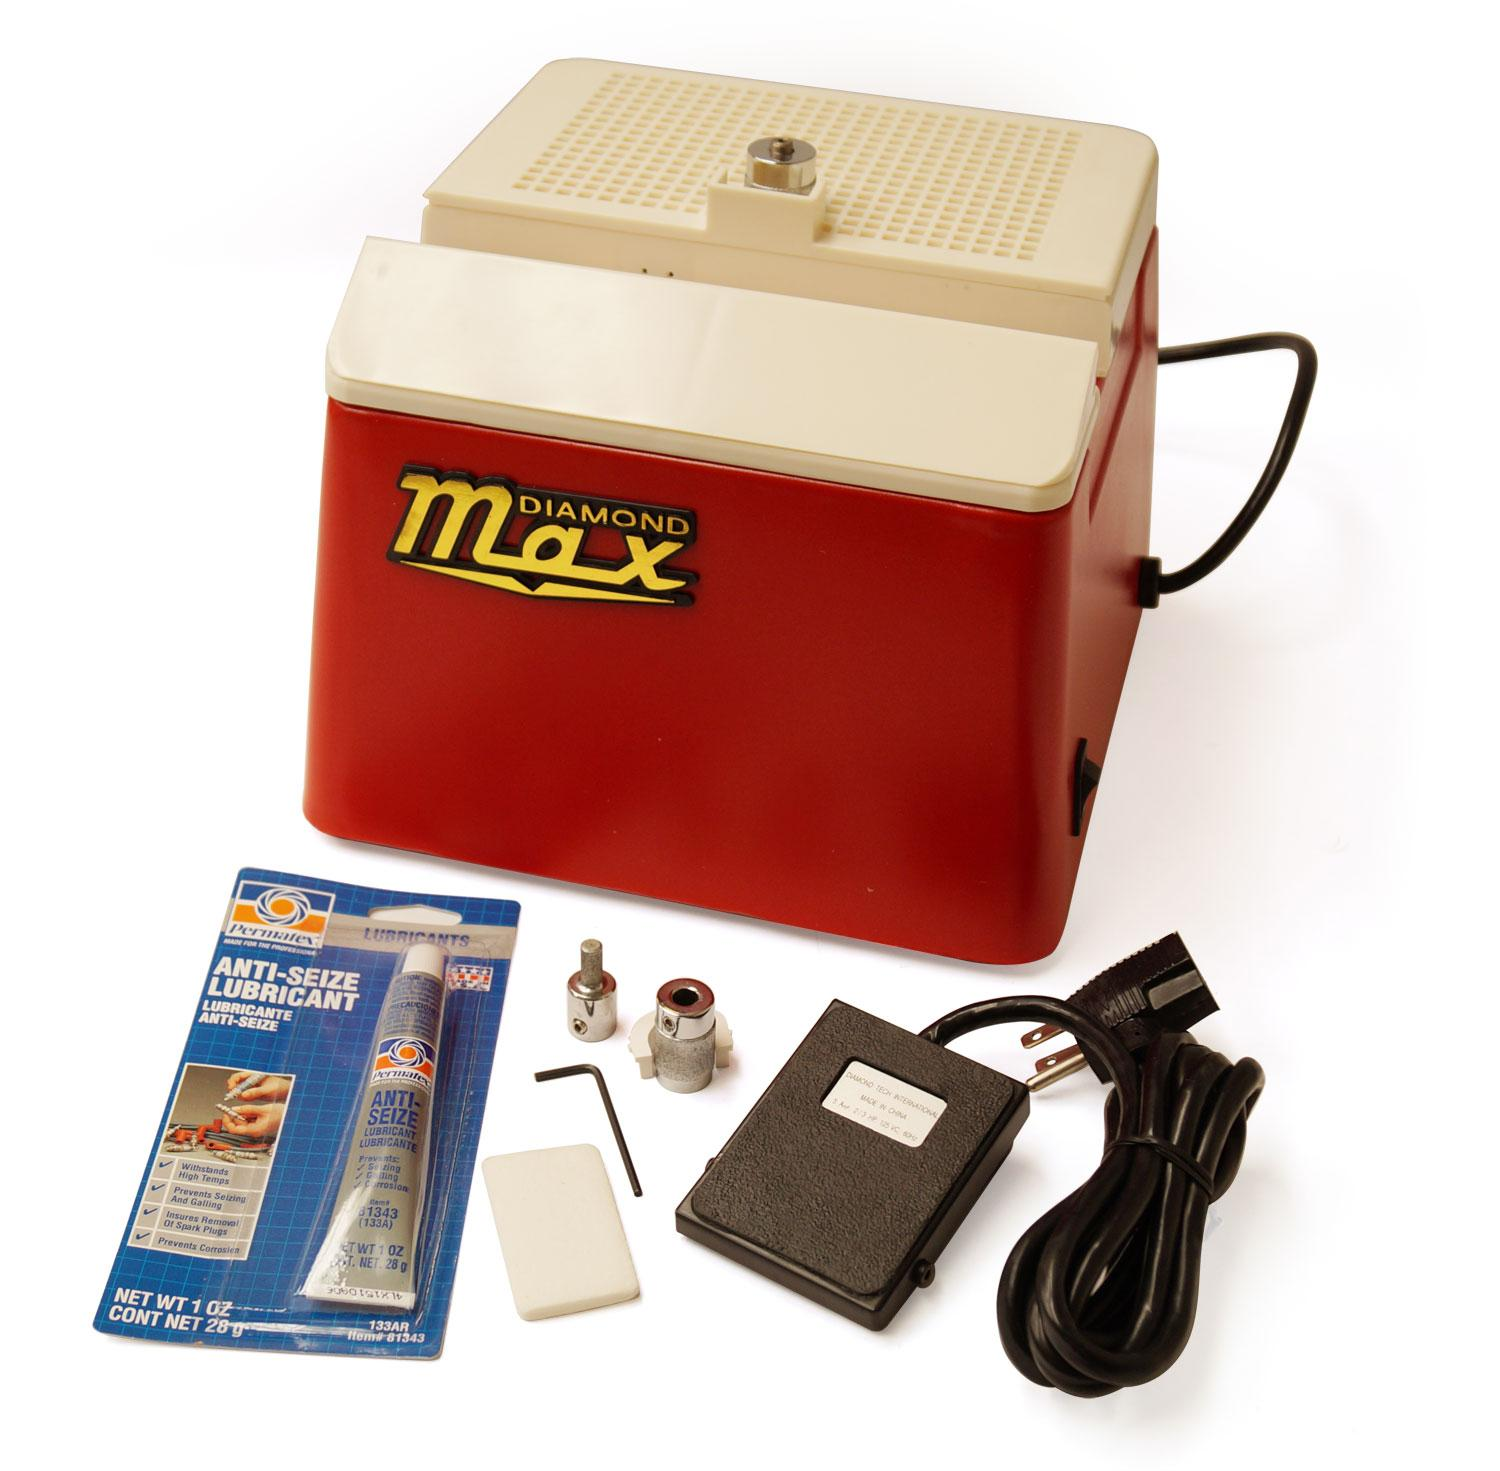 Diamond Max 2 In 1 Deluxe Grinder